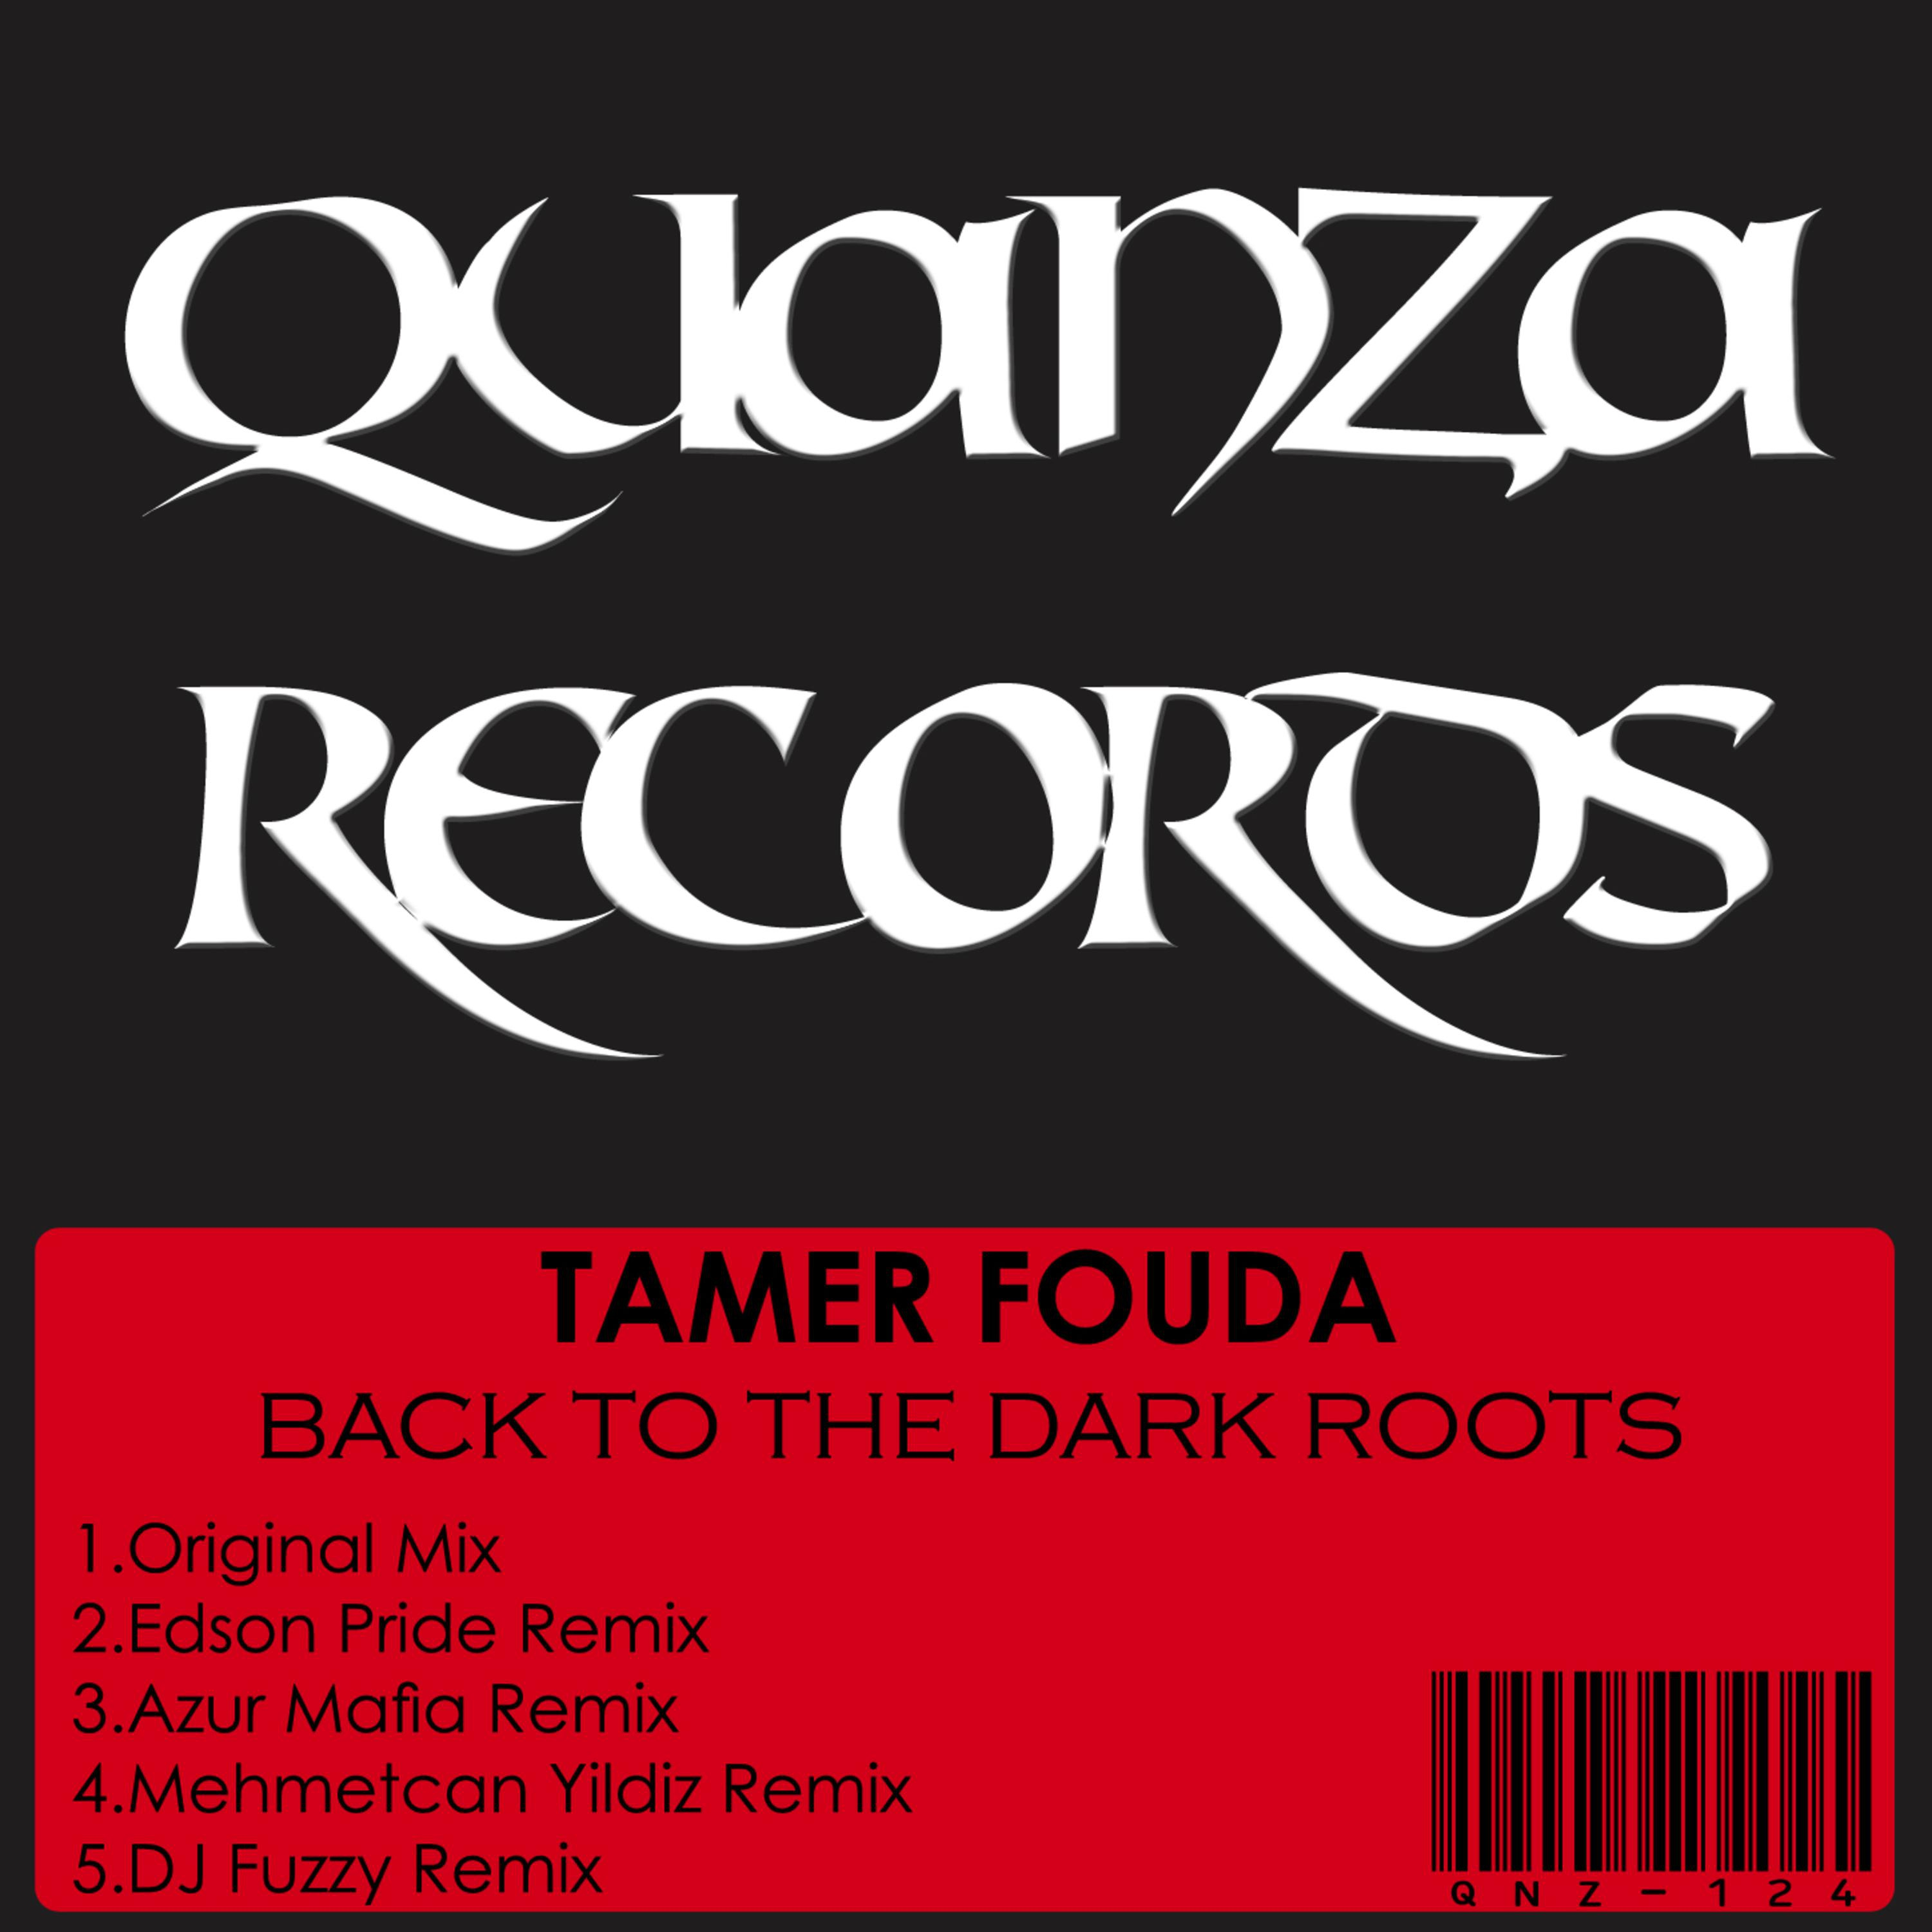 Tamer Fouda - Back To The Dark Roots (Edson Pride Remix)